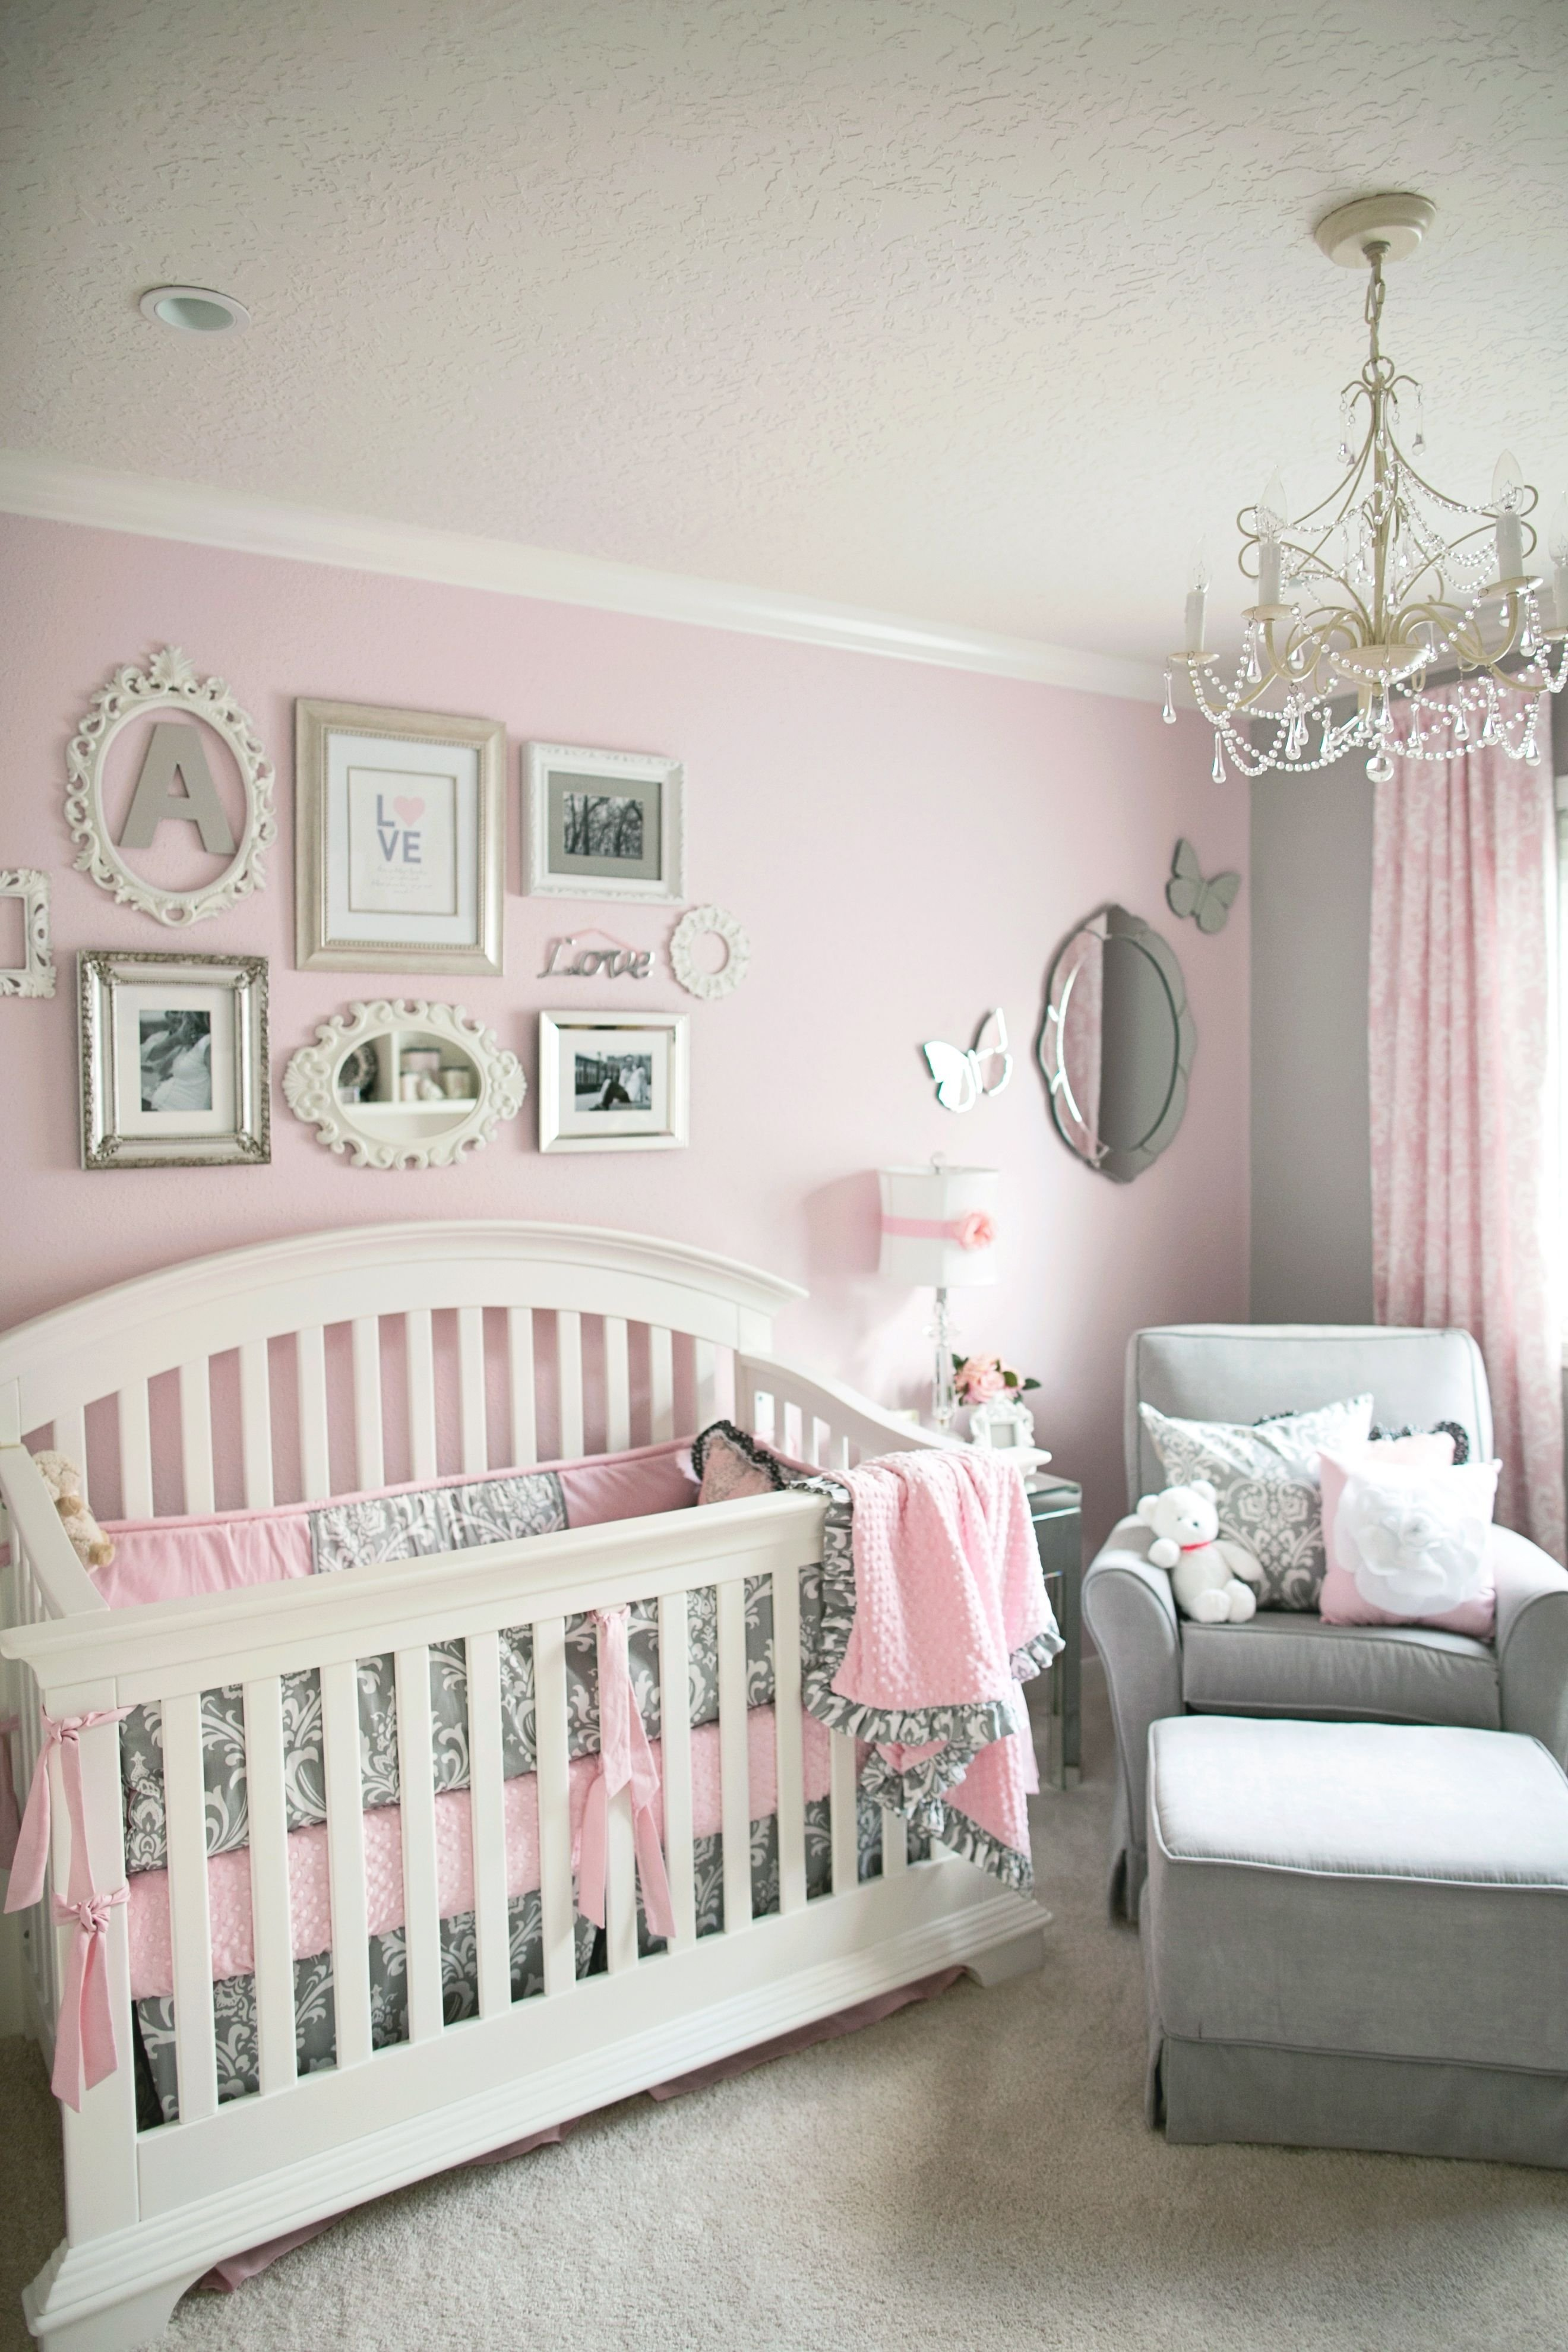 10 Ideal Pink And Grey Nursery Ideas soft and elegant gray and pink nursery gray girls and nursery 2021